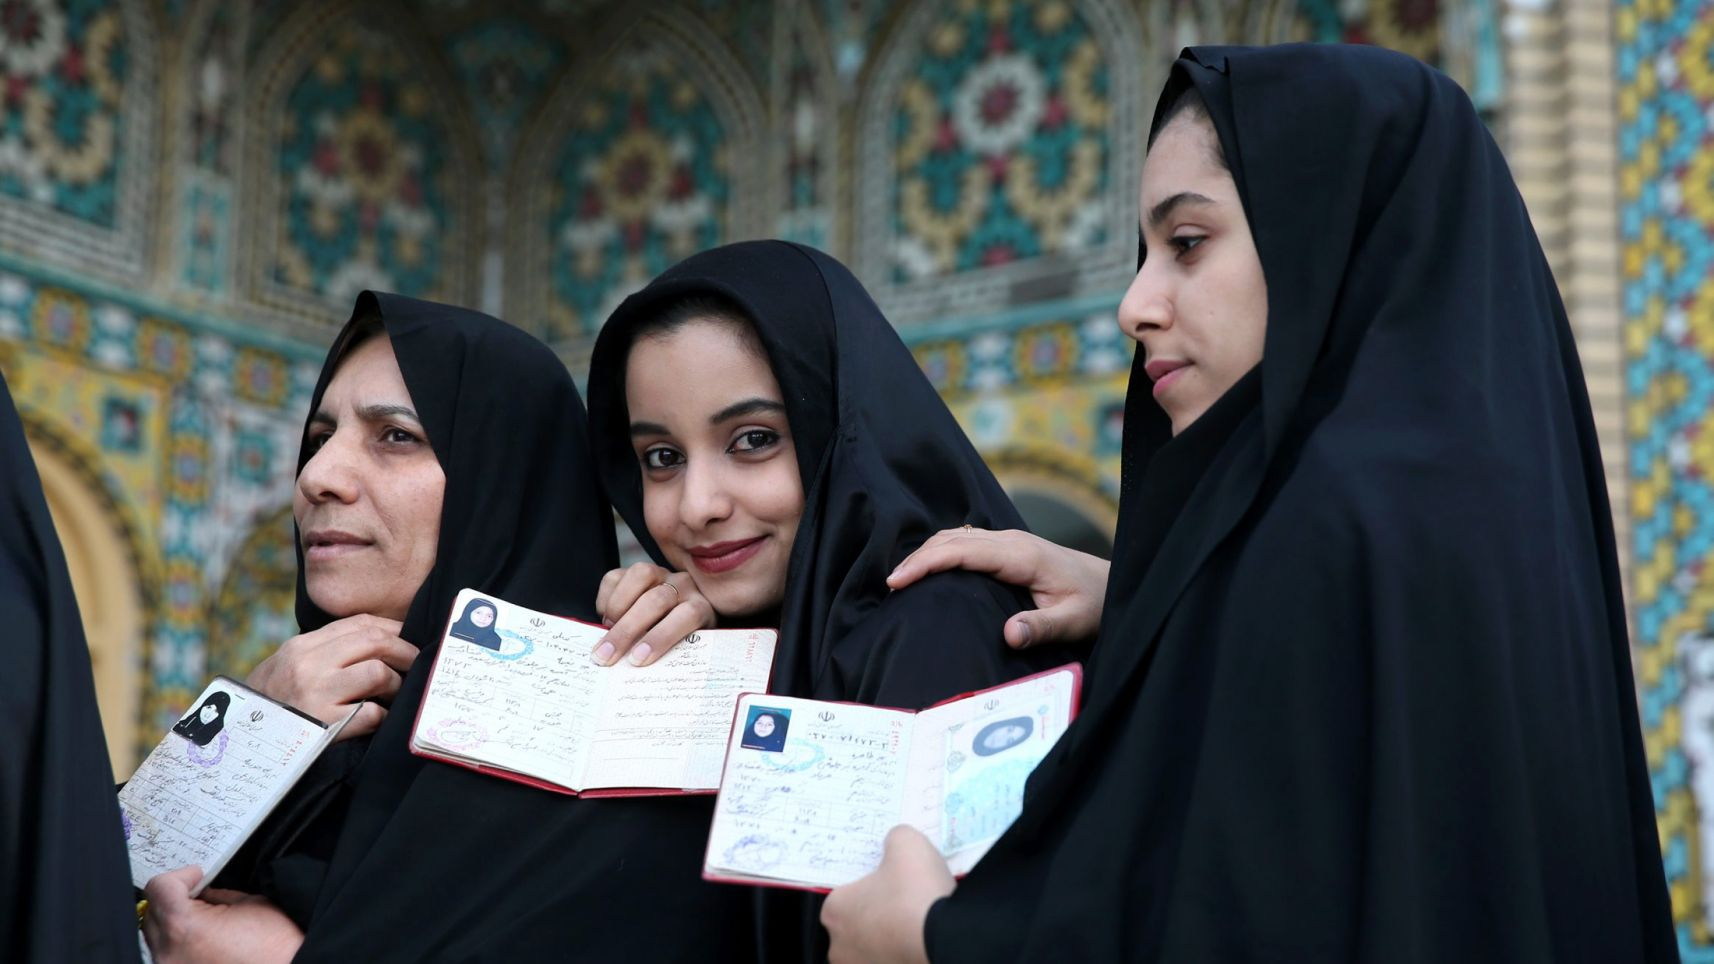 Reformists Set to Make Gains in Iranian Election - MPC JOURNAL - Iranian women show their identification, as they queue in a polling station to vote for the parliamentary and Experts Assembly elections in Qom.AP MPC Journal